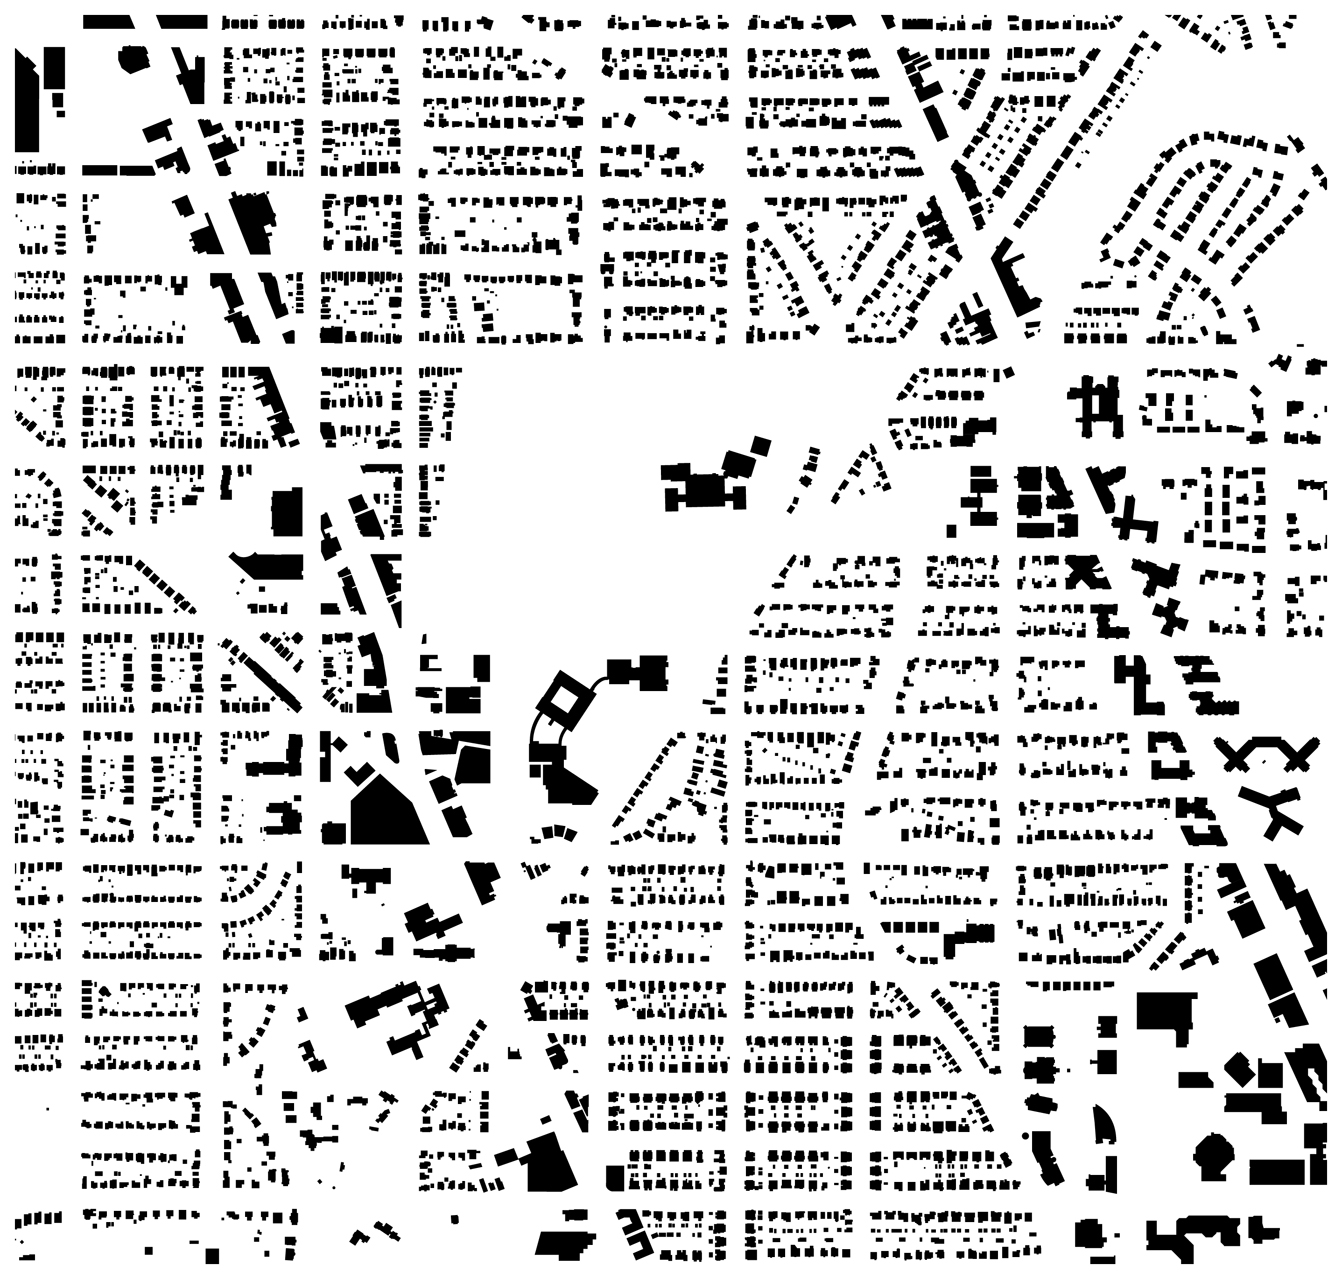 all Nolli Map Of Dc on civil war map washington dc, star map washington dc, neighborhood and ward map dc, county map washington dc, usa map washington dc, map showing washington, printable map washington dc, subway map for washington dc, us map showing dc, map ofwashington dc, city map dc, print map washington dc, zip code map nw dc, united states map with dc, map with metro stops dc, simple map washington dc, street map with metro stations washington dc, interactive metro map washington dc, wmata map washington dc, google maps dc,